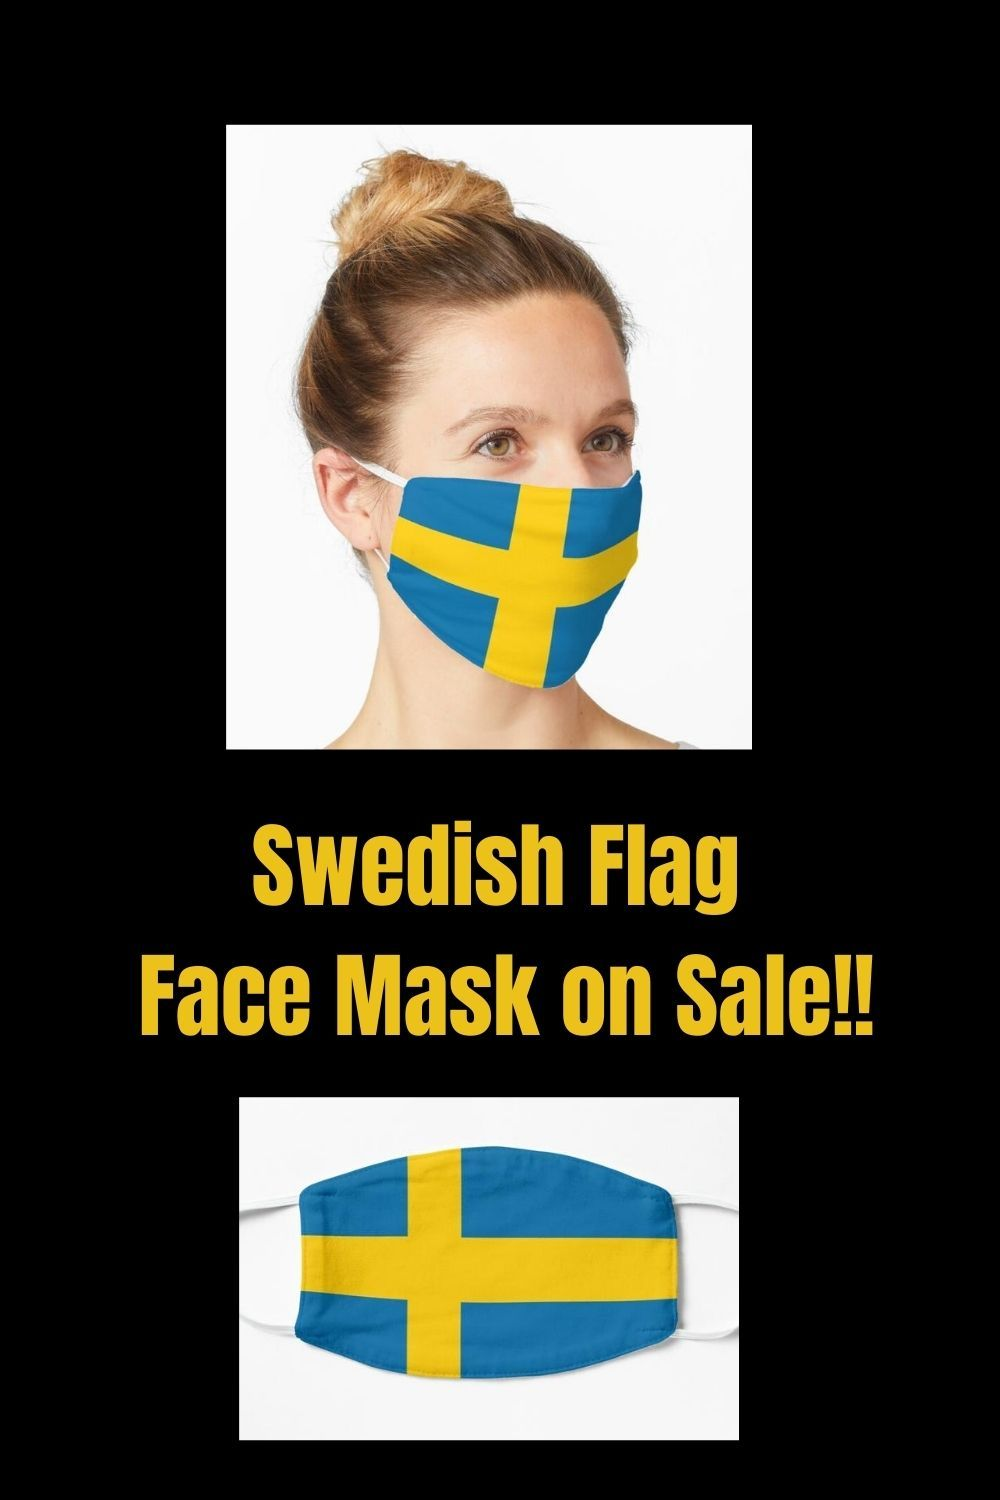 Swedish Flag Country Mask By Aj Liber In 2020 Flag Face Funny Face Mask Swedish Flag